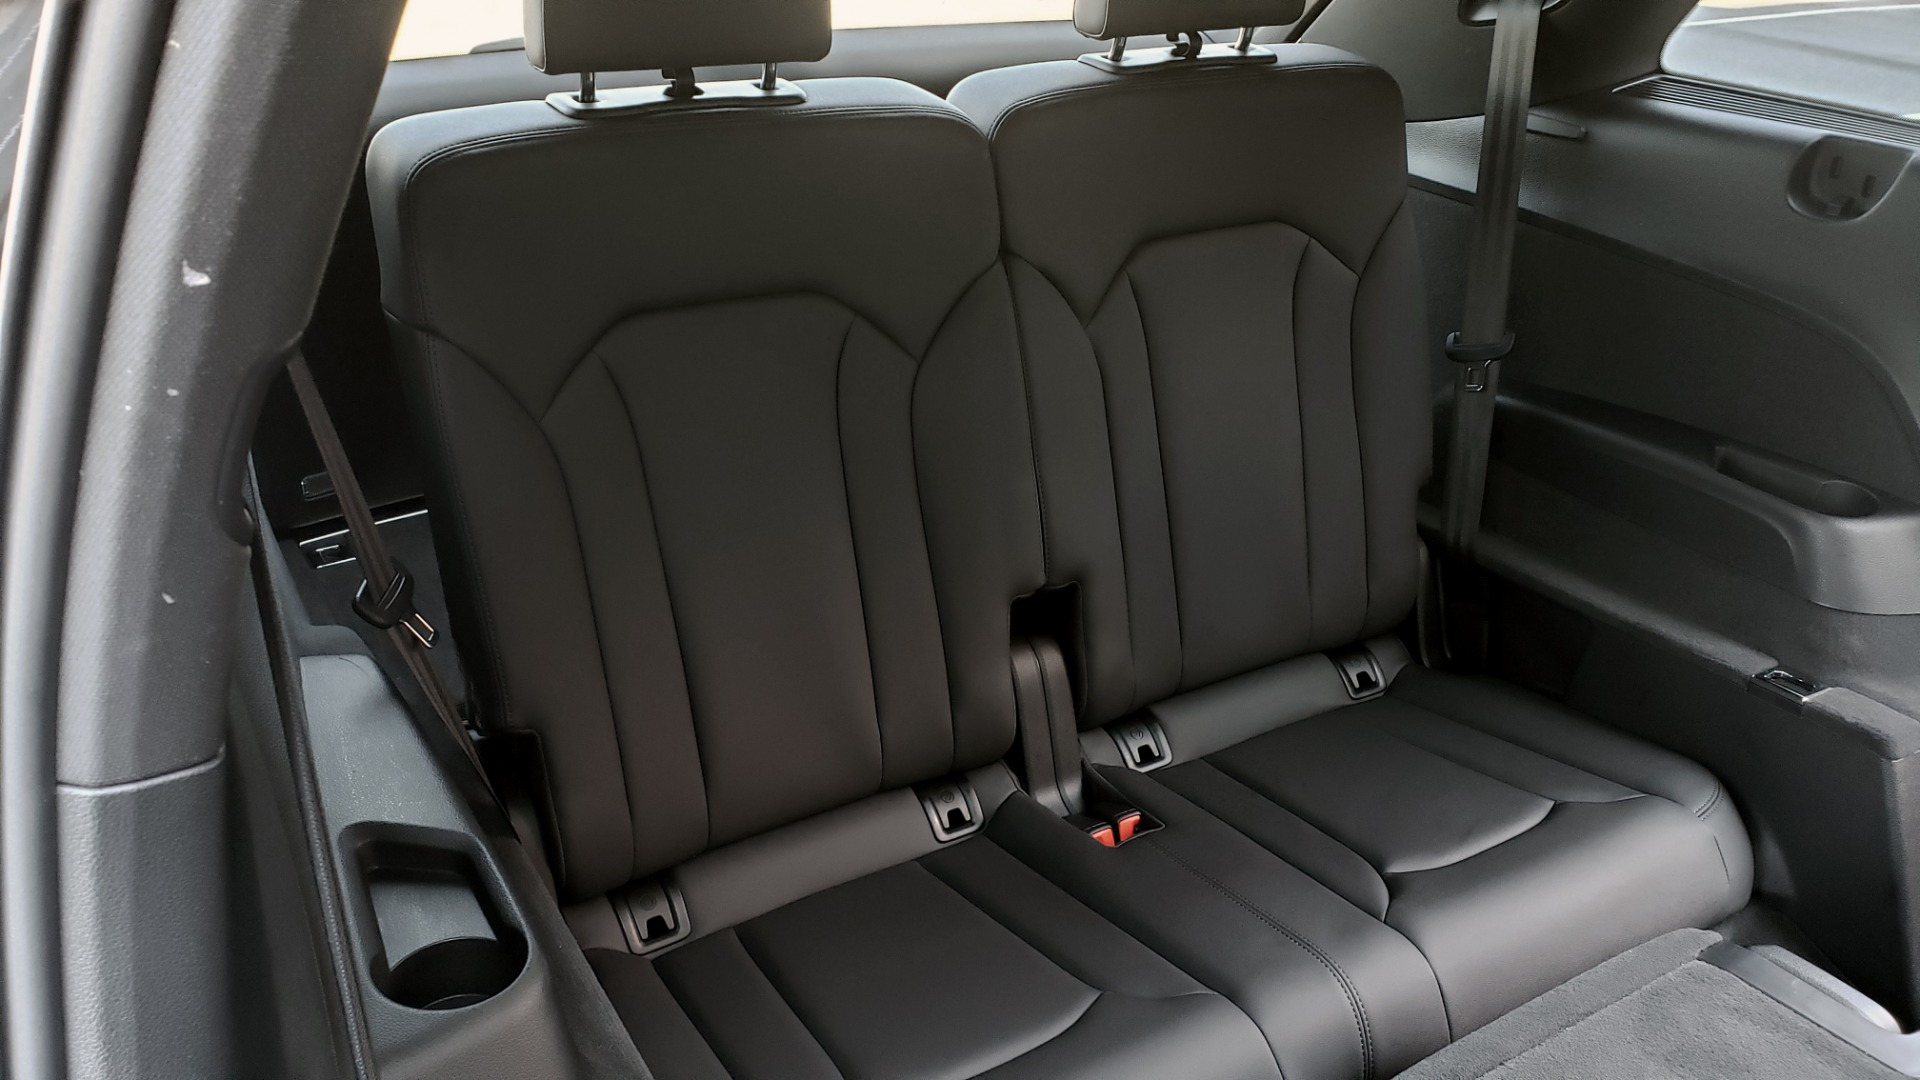 Used 2020 Audi Q7 PREMIUM PLUS / NAV / SUNROOF / 3-ROW / REARVIEW for sale $50,695 at Formula Imports in Charlotte NC 28227 70